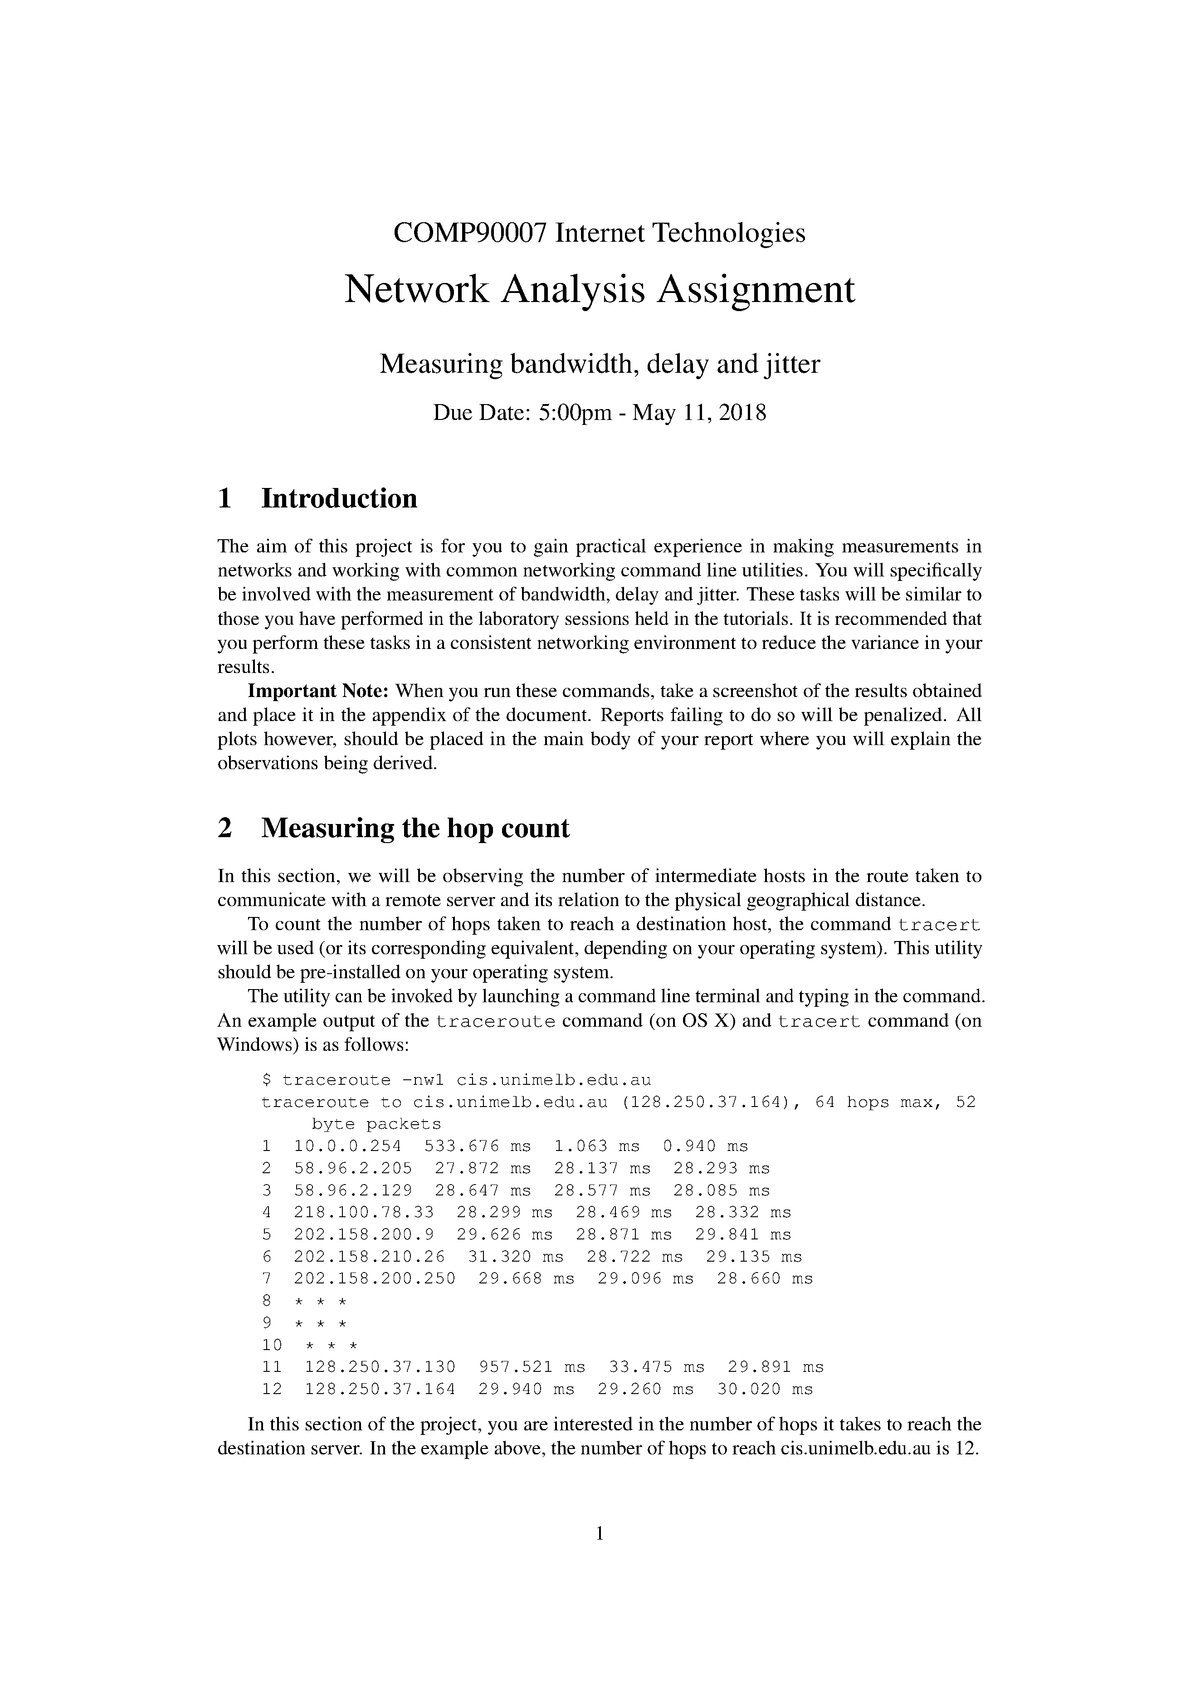 Network Analysis 2018 Sem 1 - COMP90007: Internet